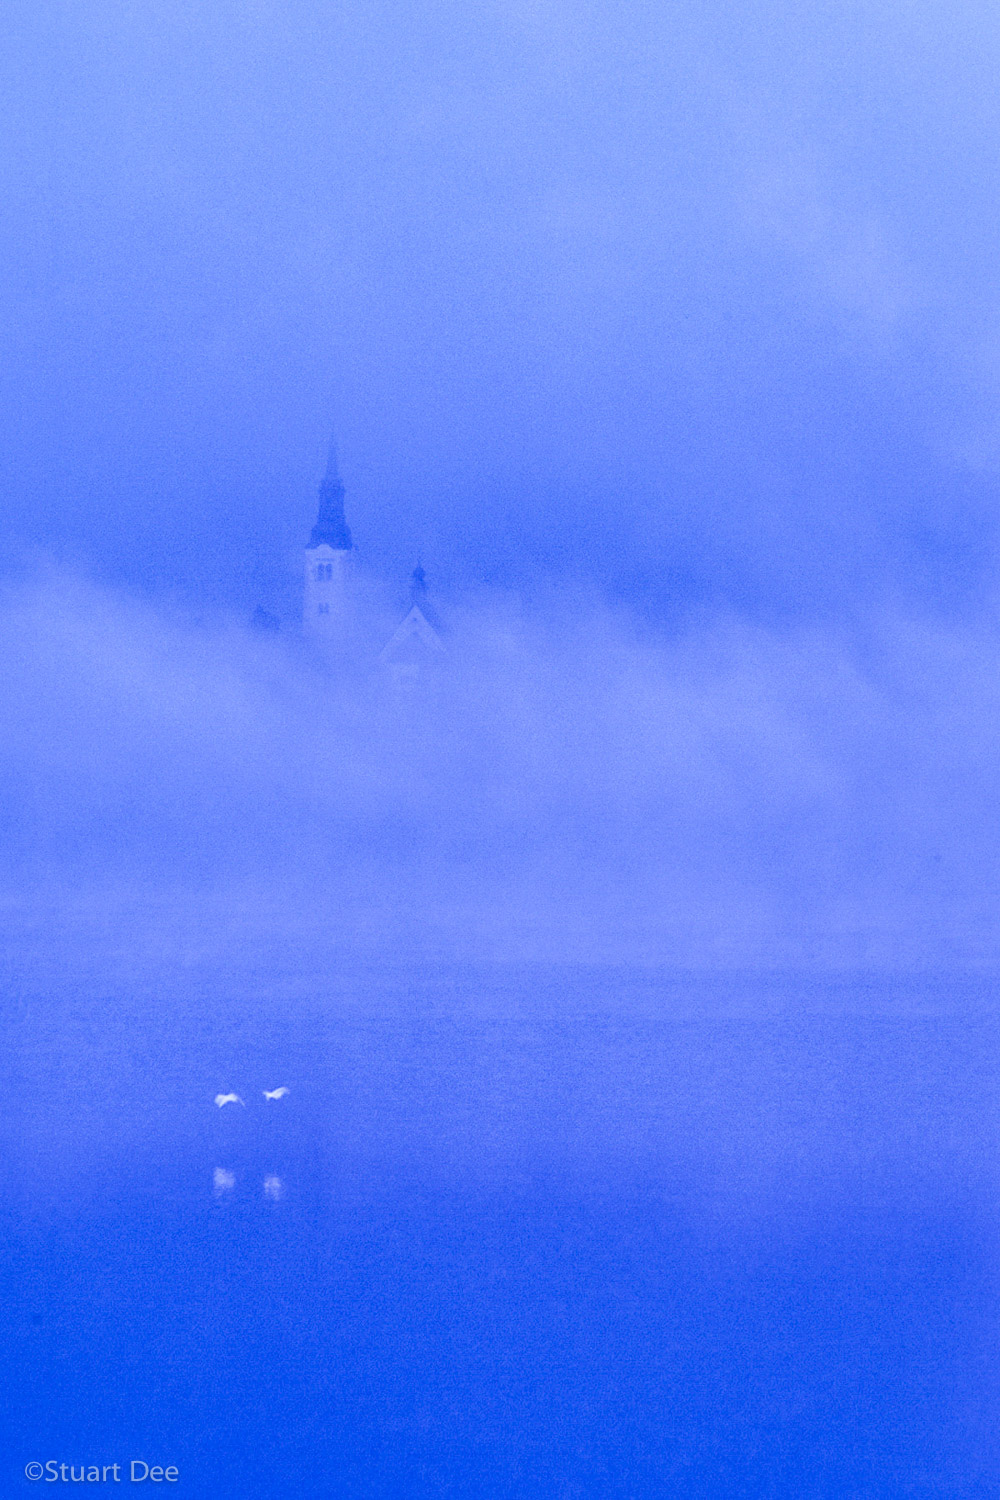 St. Mary's Church, Bled Island (Blenjski Otok), Lake Bled, Bled, Slovenia, in fog and mist, with swans in flight